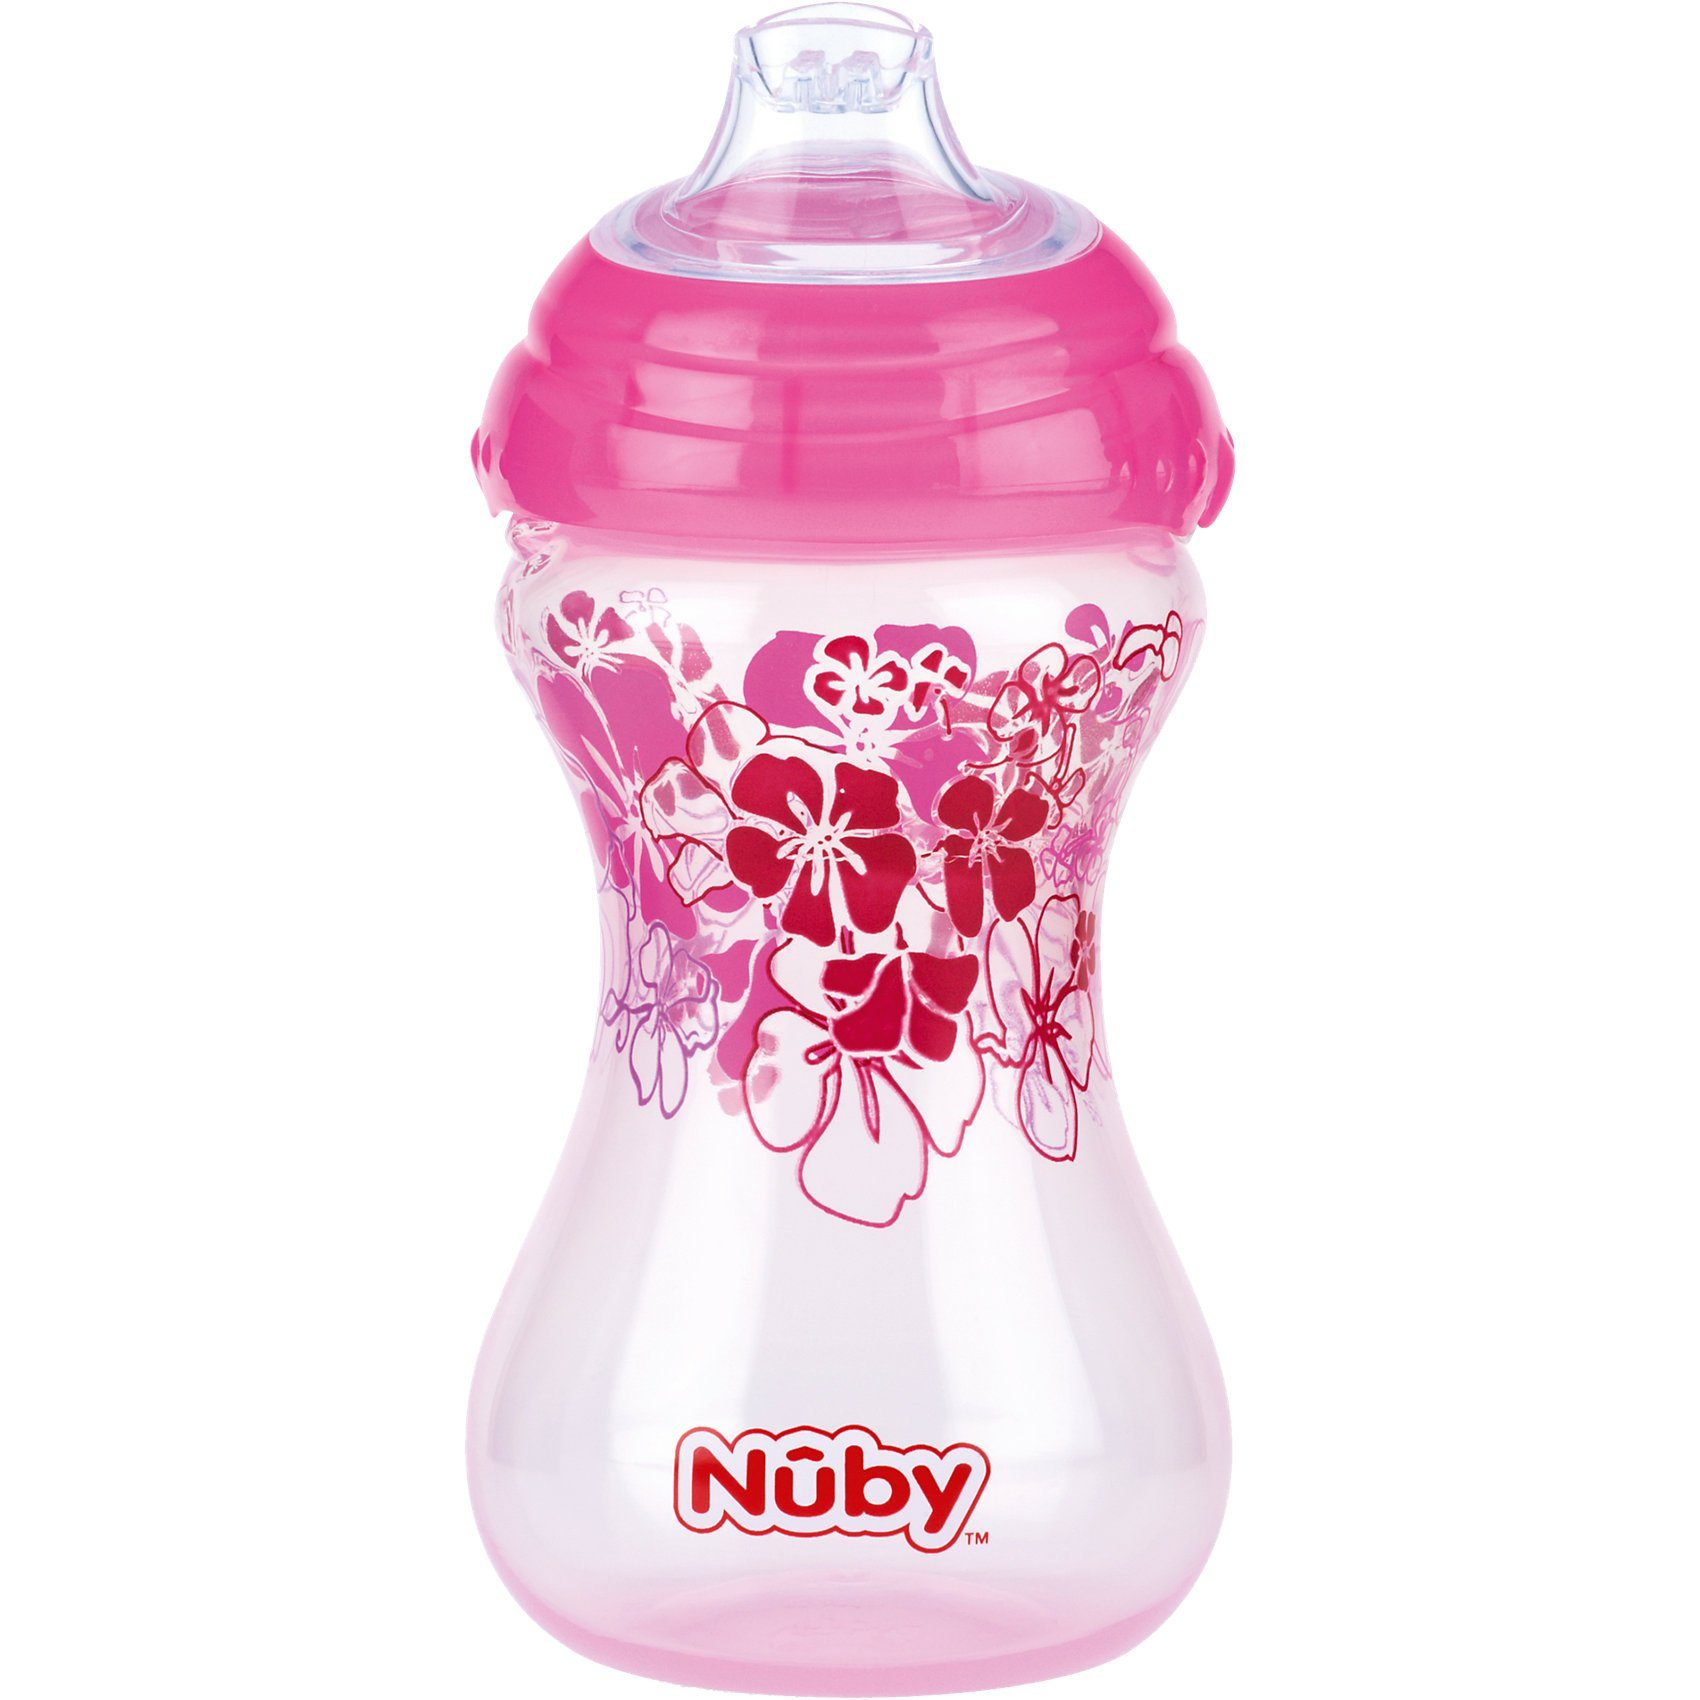 Nuby Trinkbecher Clik-It, 300 ml, pink